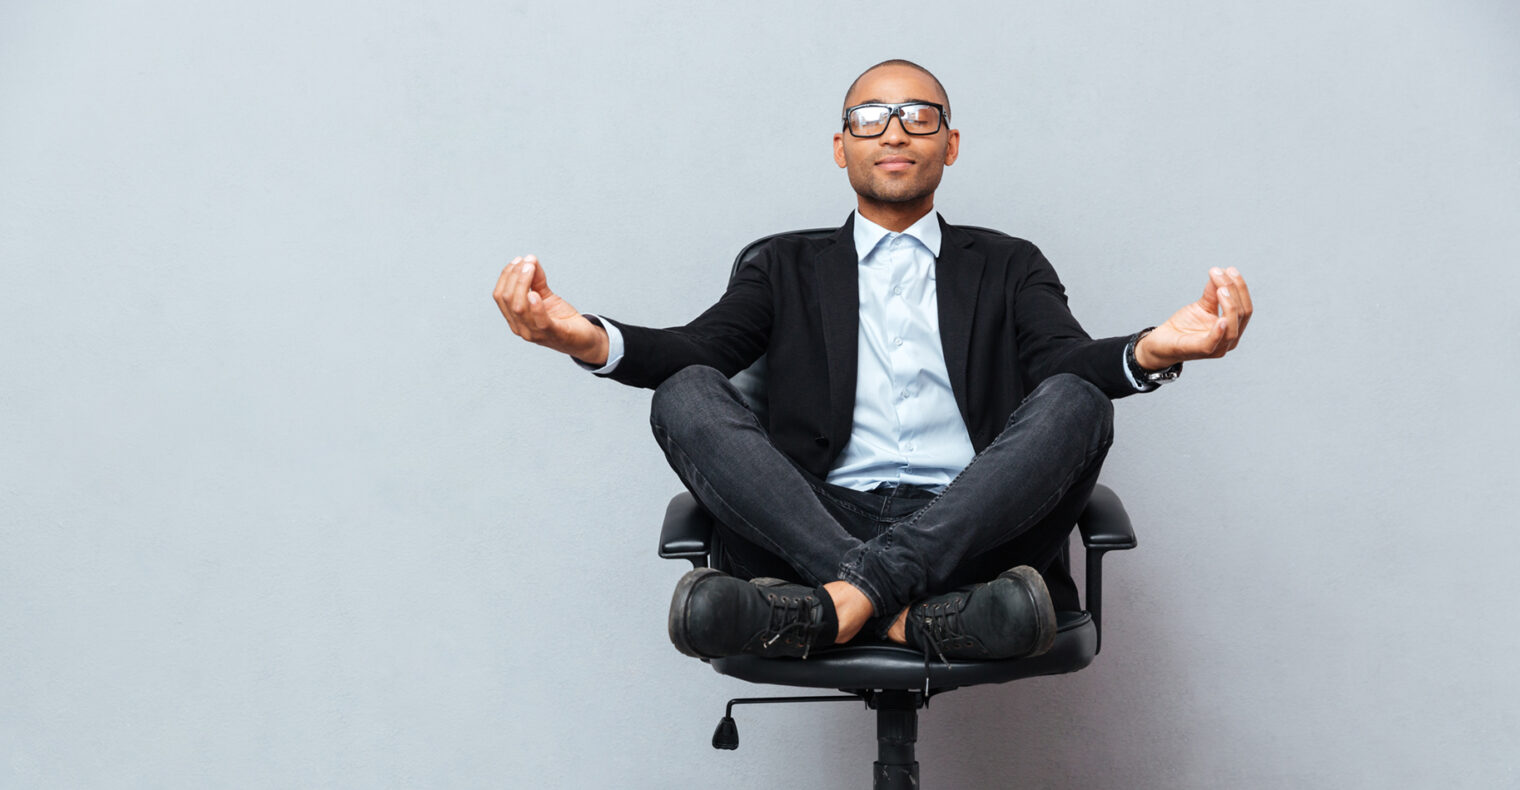 Man meditating in an office chair